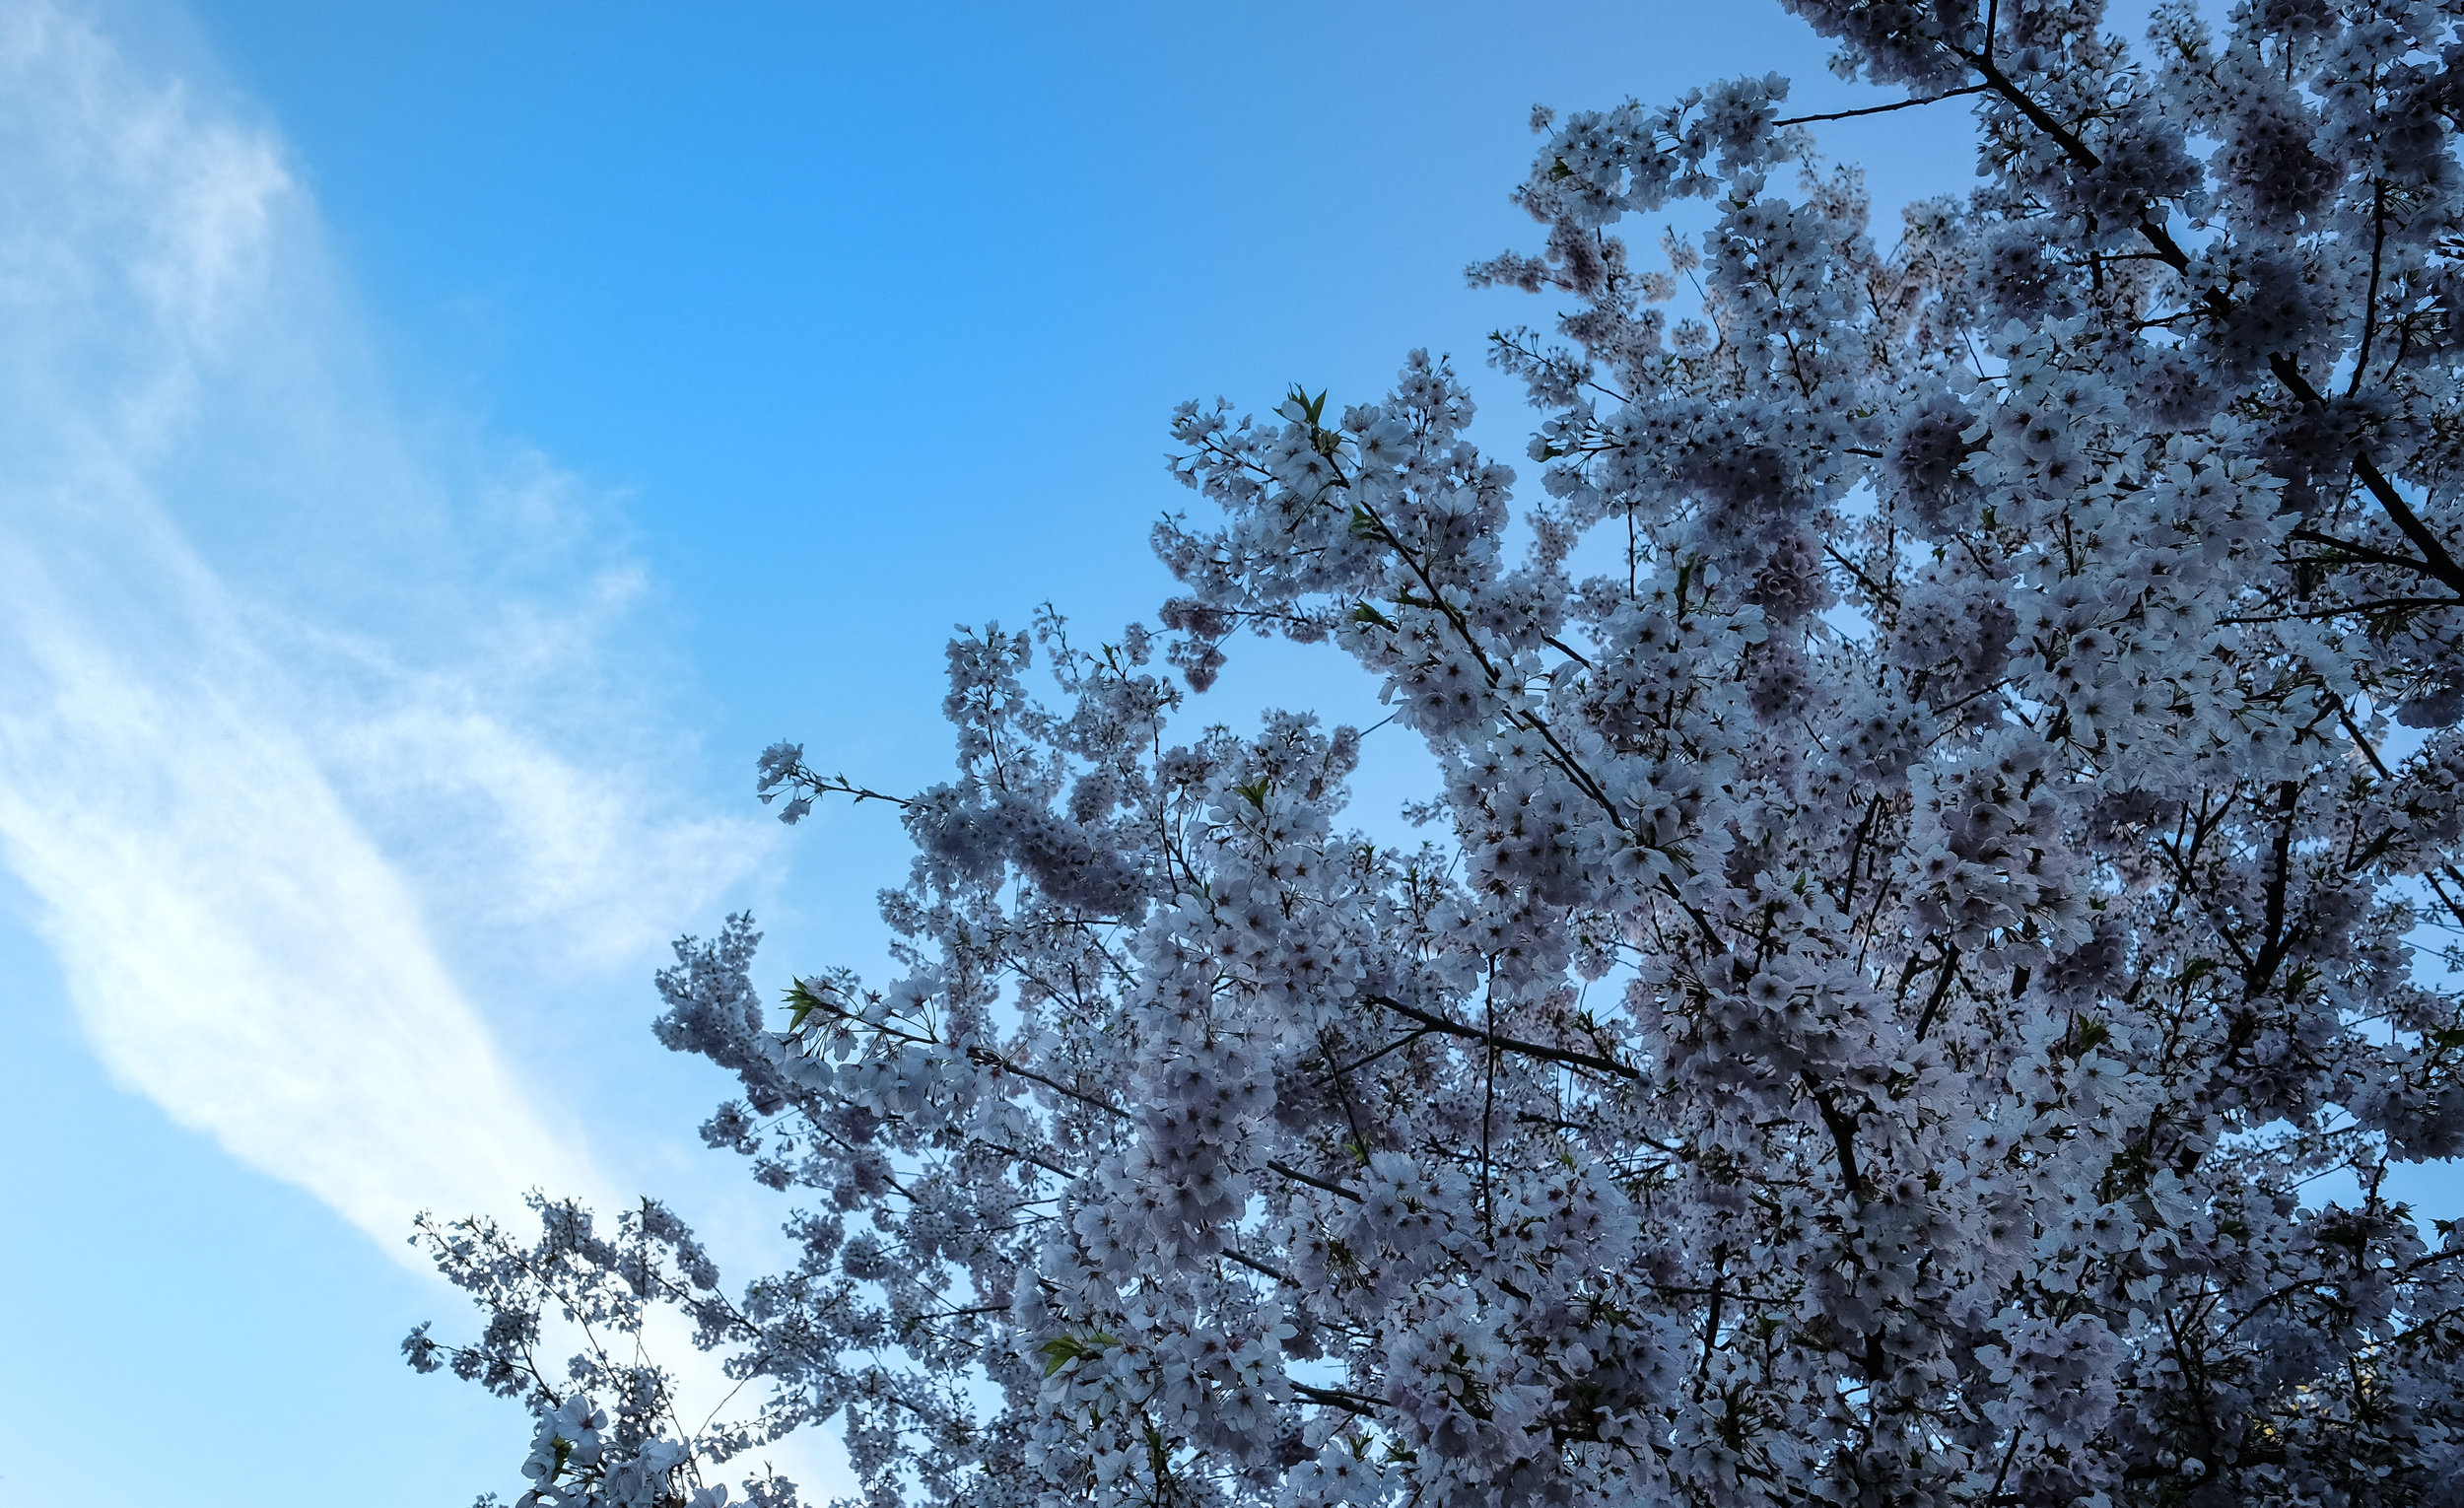 A canopy of cherry blossoms against a blue sky.  Fuji XE-2 XF 14mm 2.8 at f/6.4 1/400 ISO 400